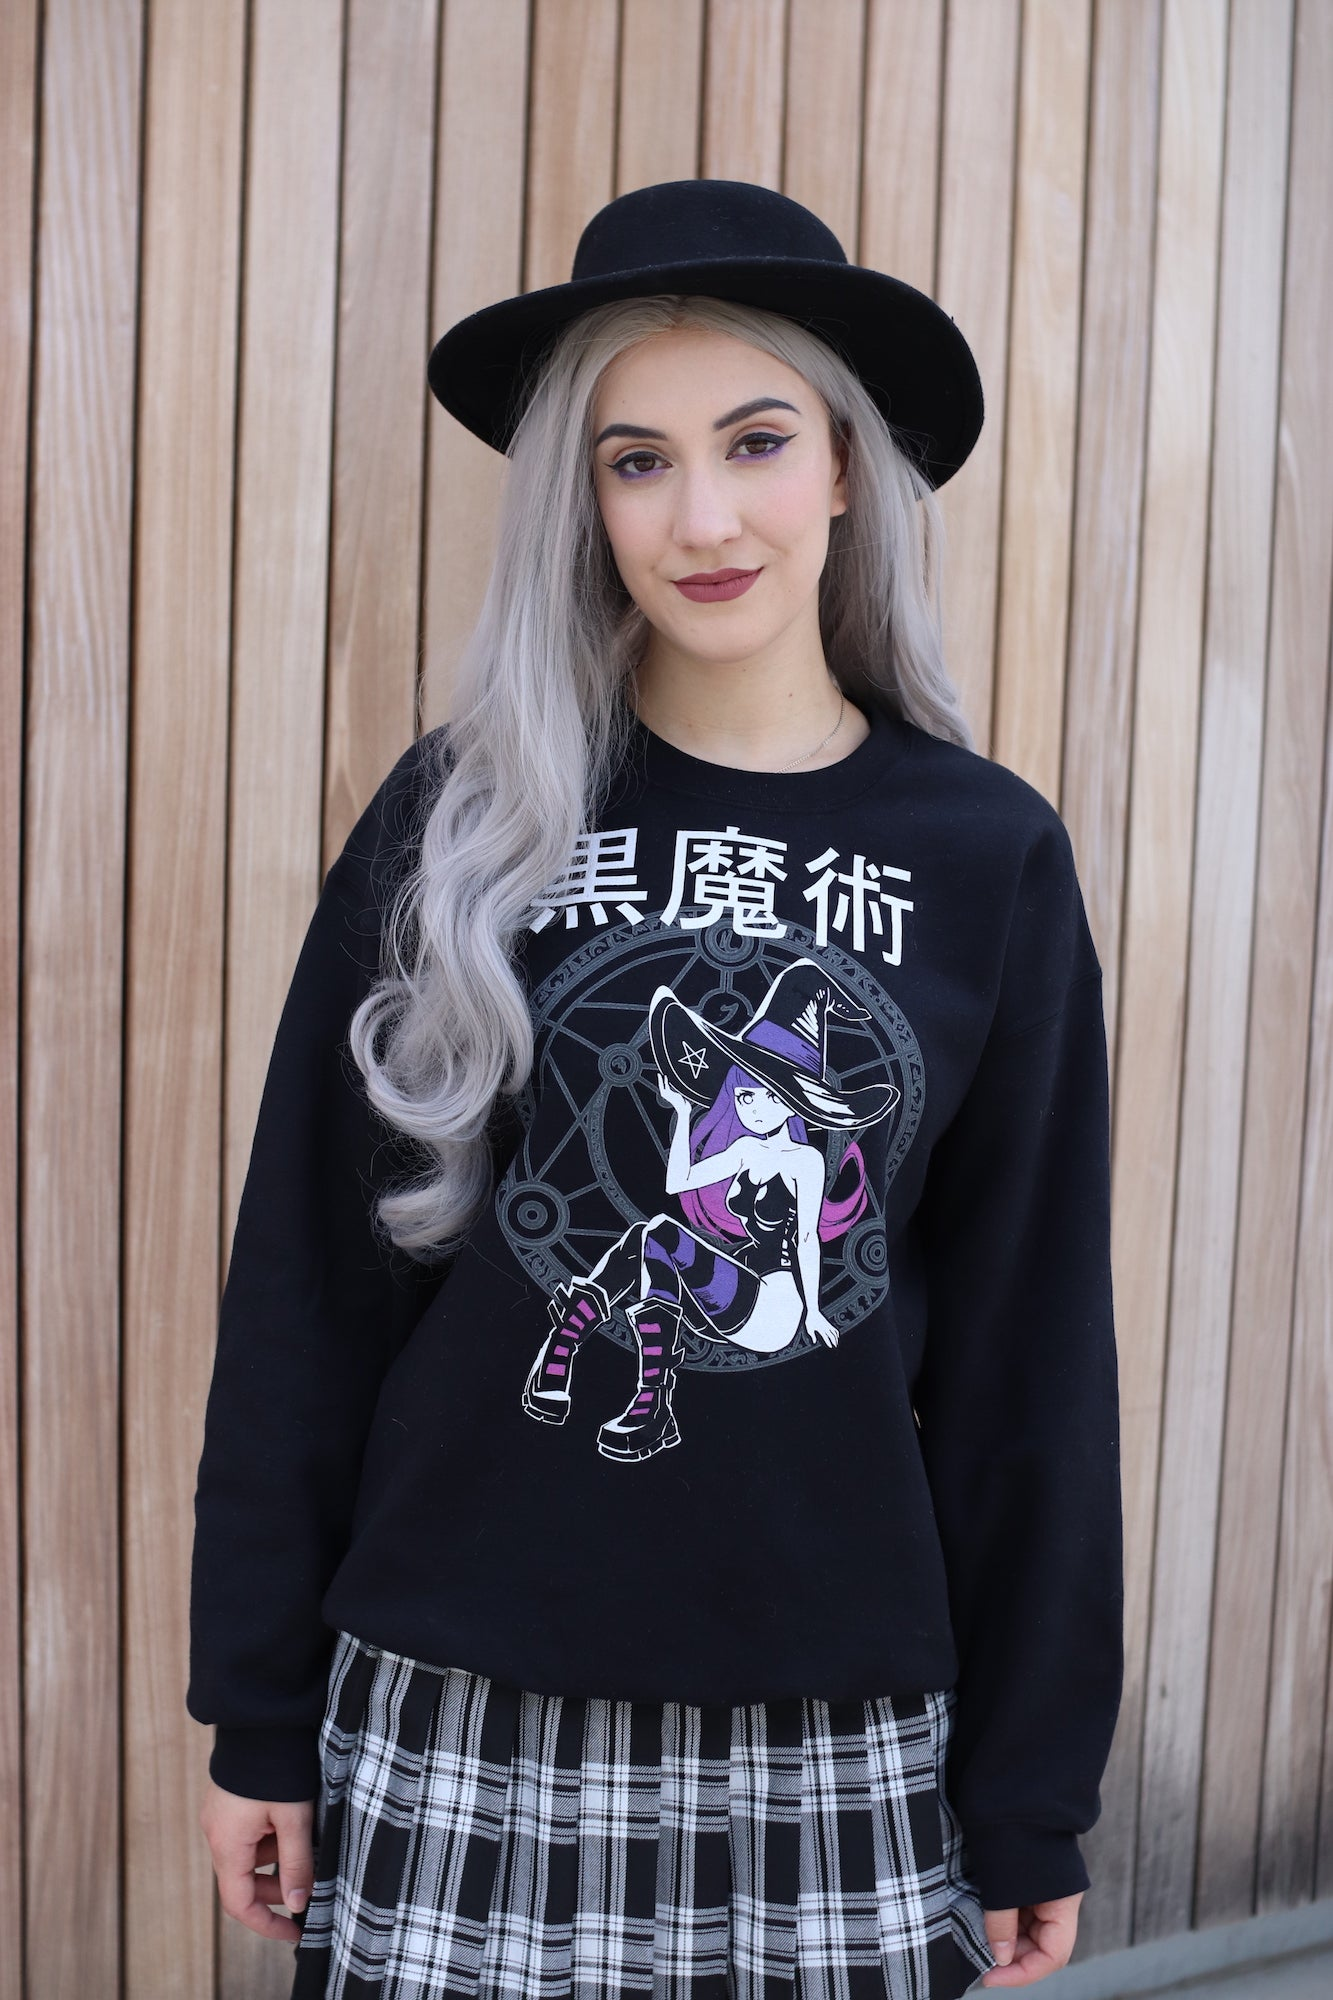 'BLACK MAGIC' Sweater // 黒魔術 Kuromajutsu Black Long Sleeve Pullover Sweater by Fawnbomb - peachiieshop